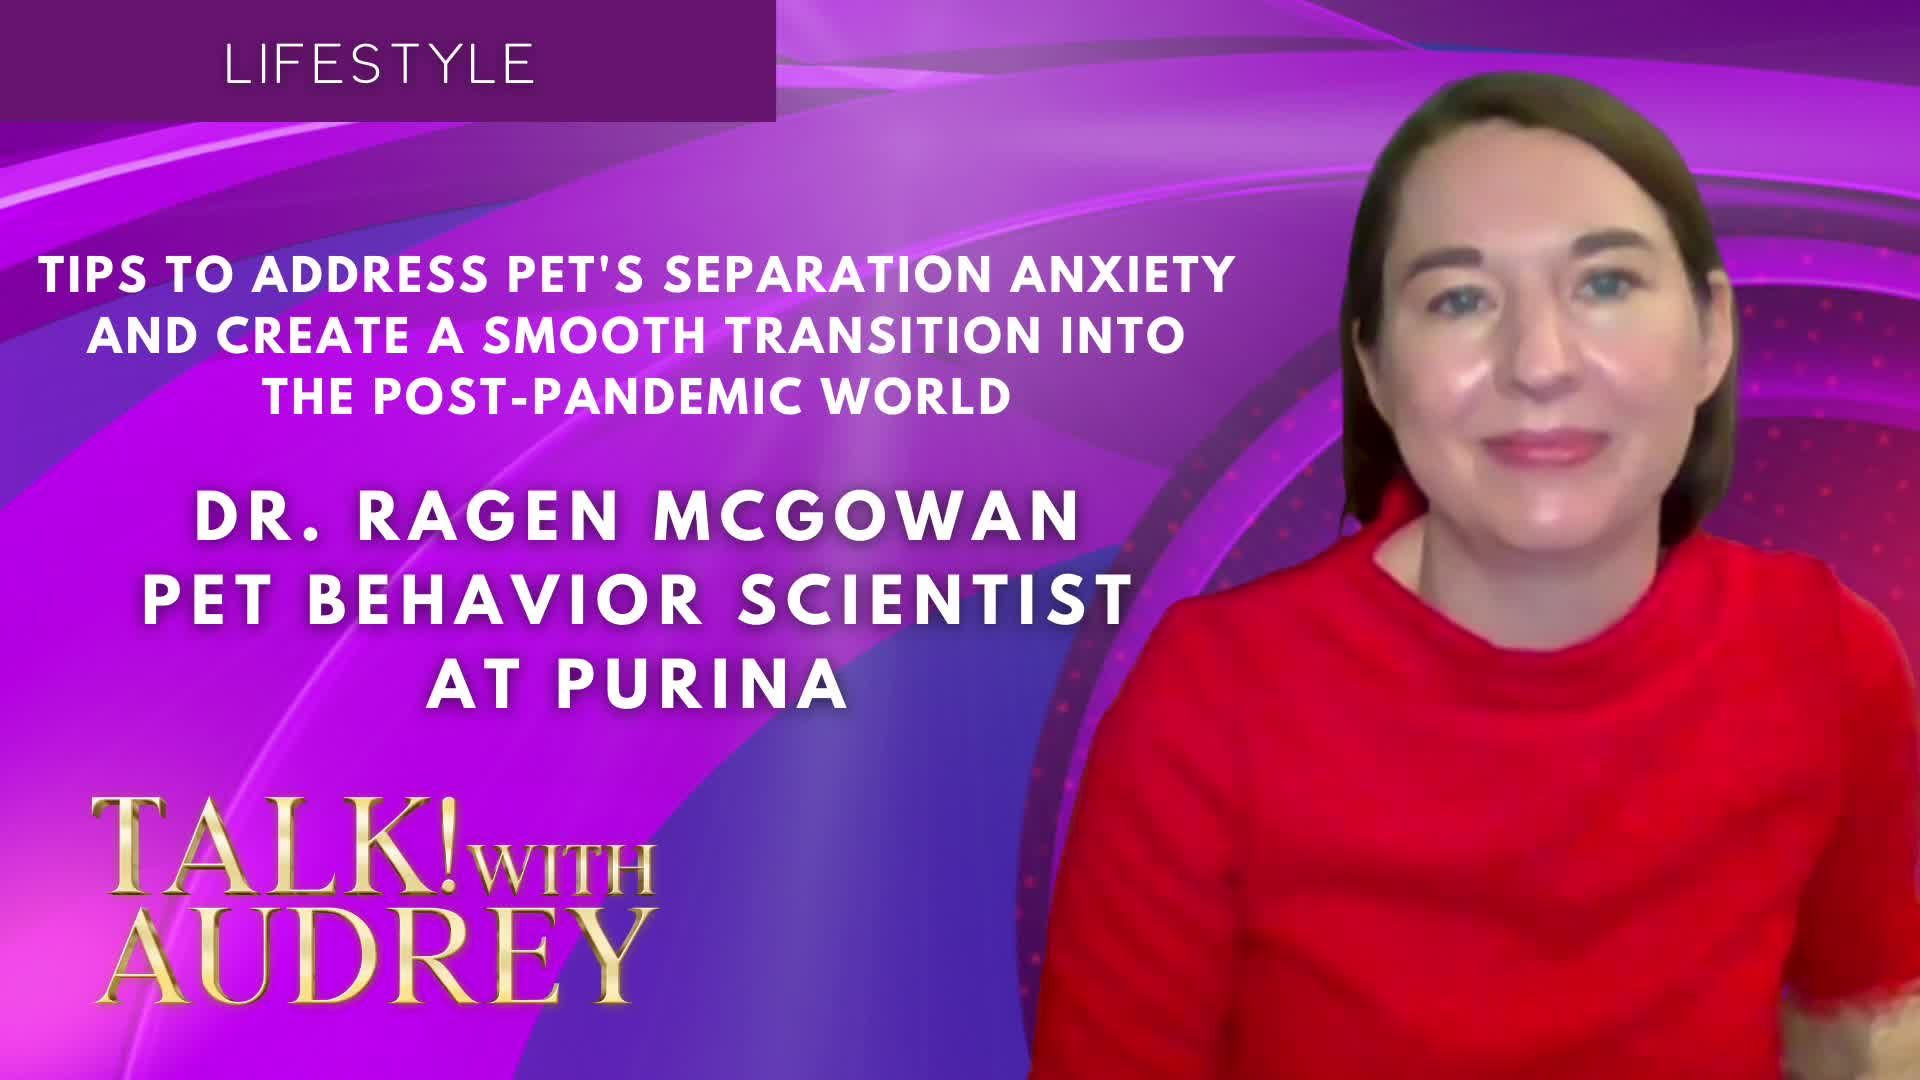 TALK! with AUDREY – Dr. Ragen McGowan - Tips to Address Pet's Separation Anxiety and Create a Smooth Transition Into the Post-Pandemic World